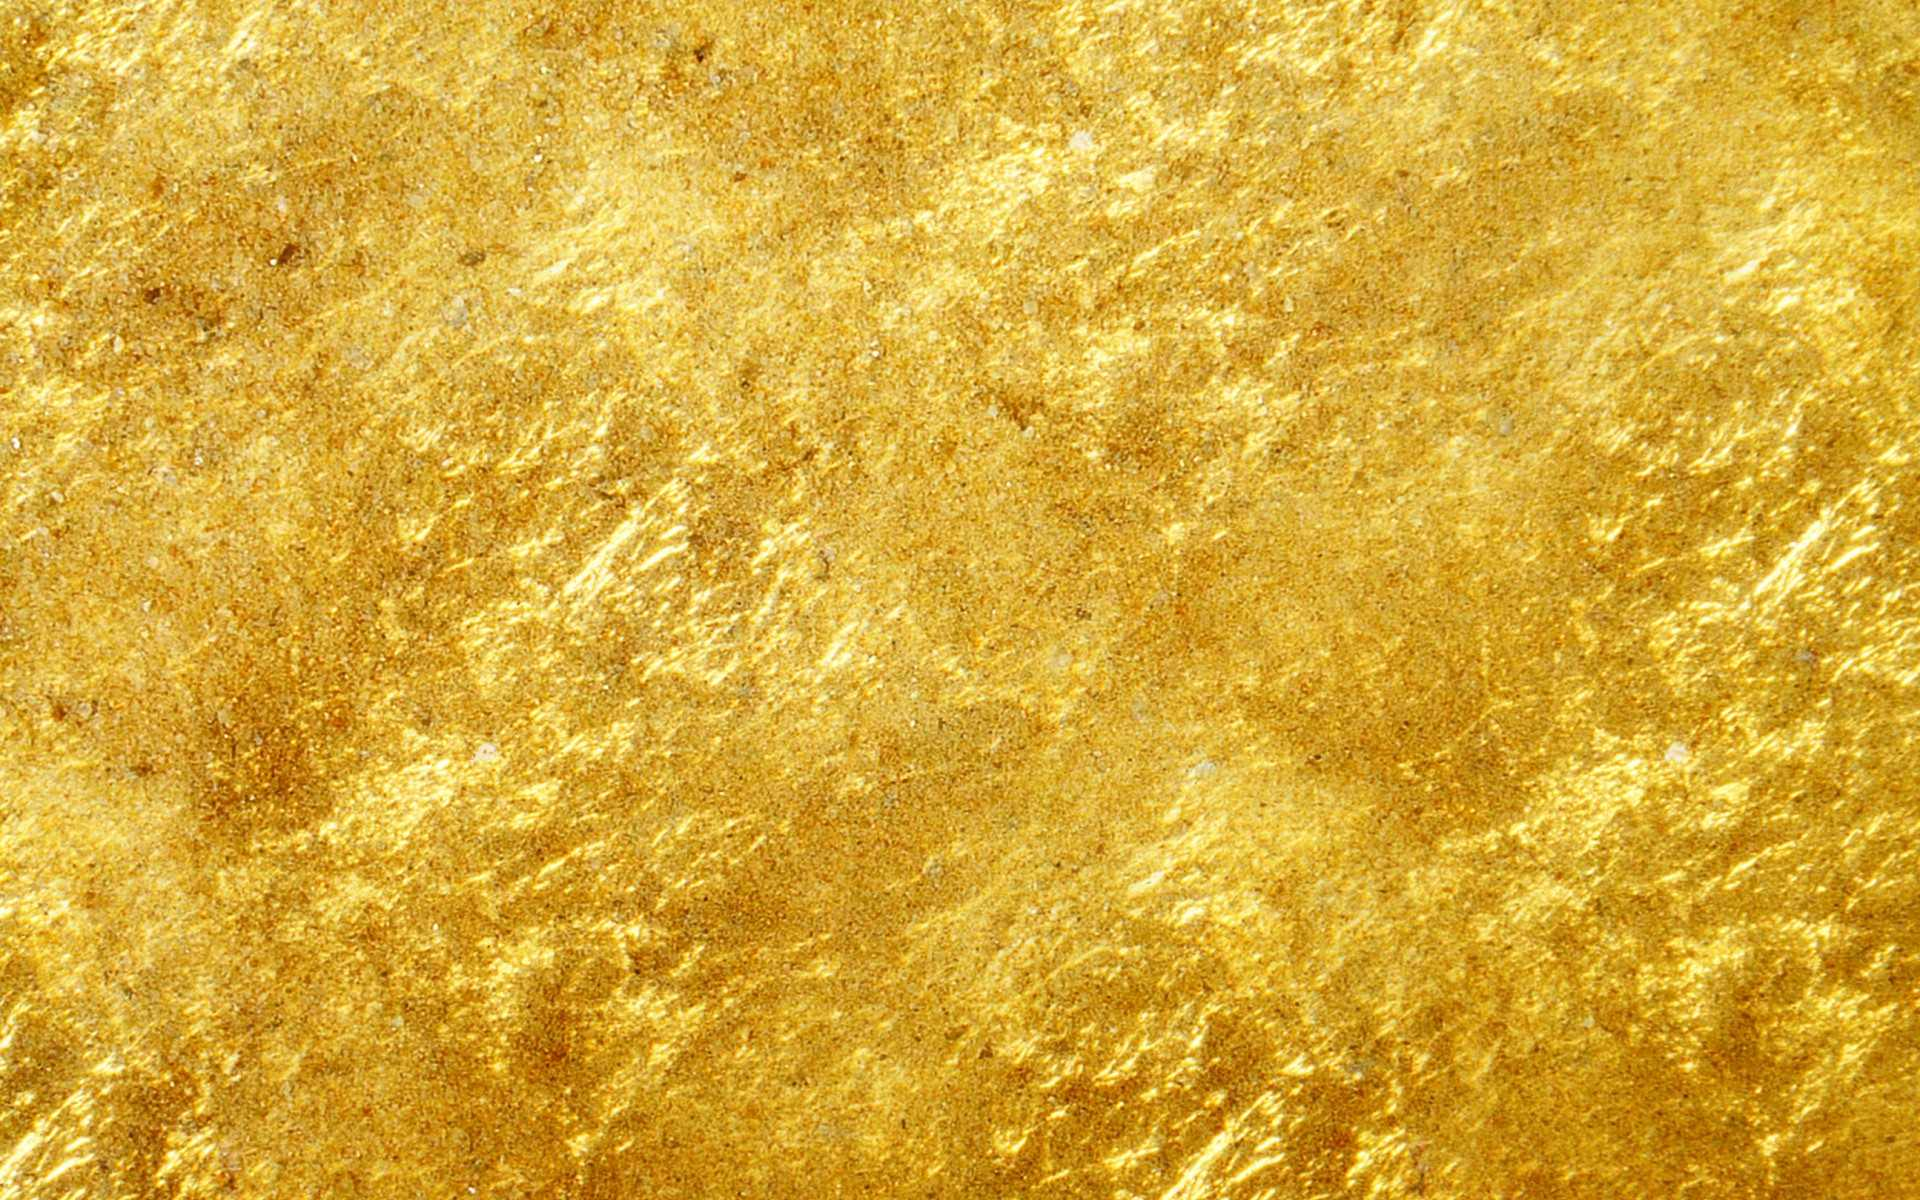 21 golden wallpapers backgrounds images freecreatives for Gold wallpaper for walls